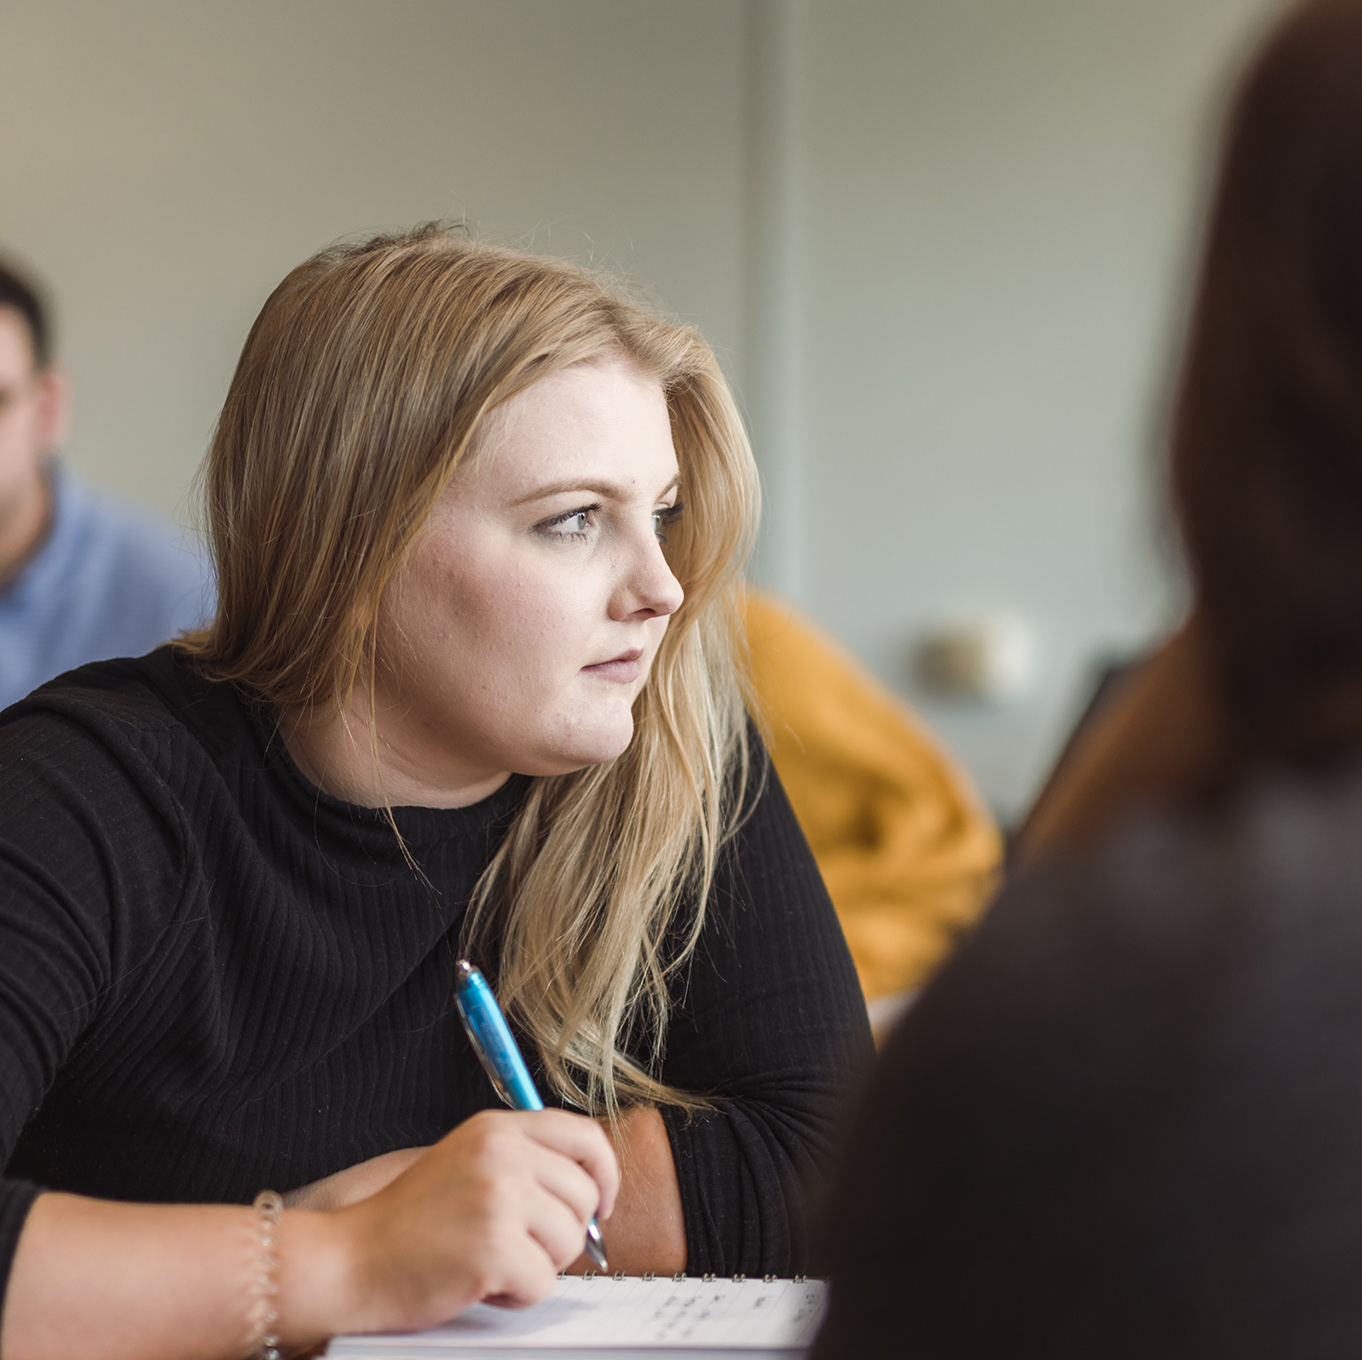 A student looks to the side, her pen poised over her notebook